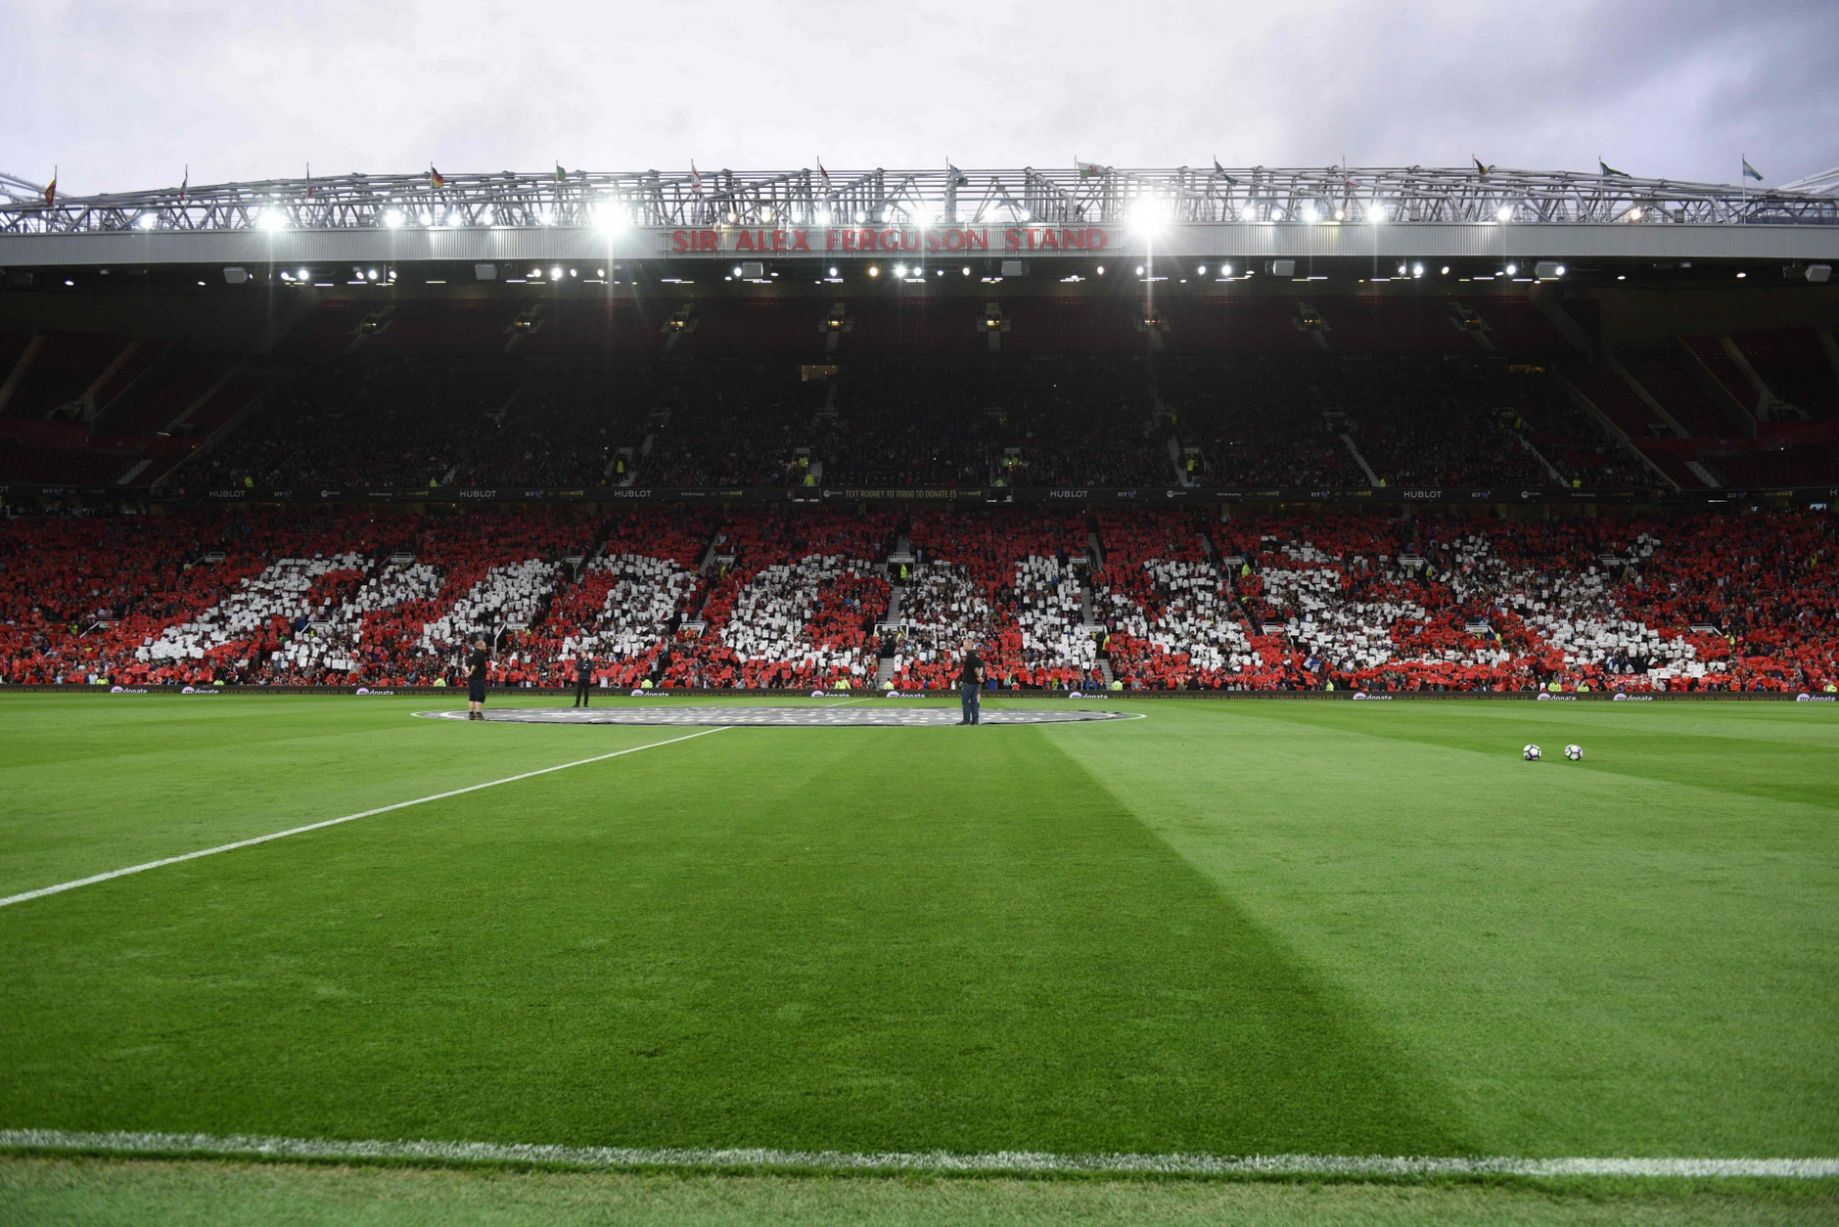 Fans in the stands spell out the name of Wayne Rooney